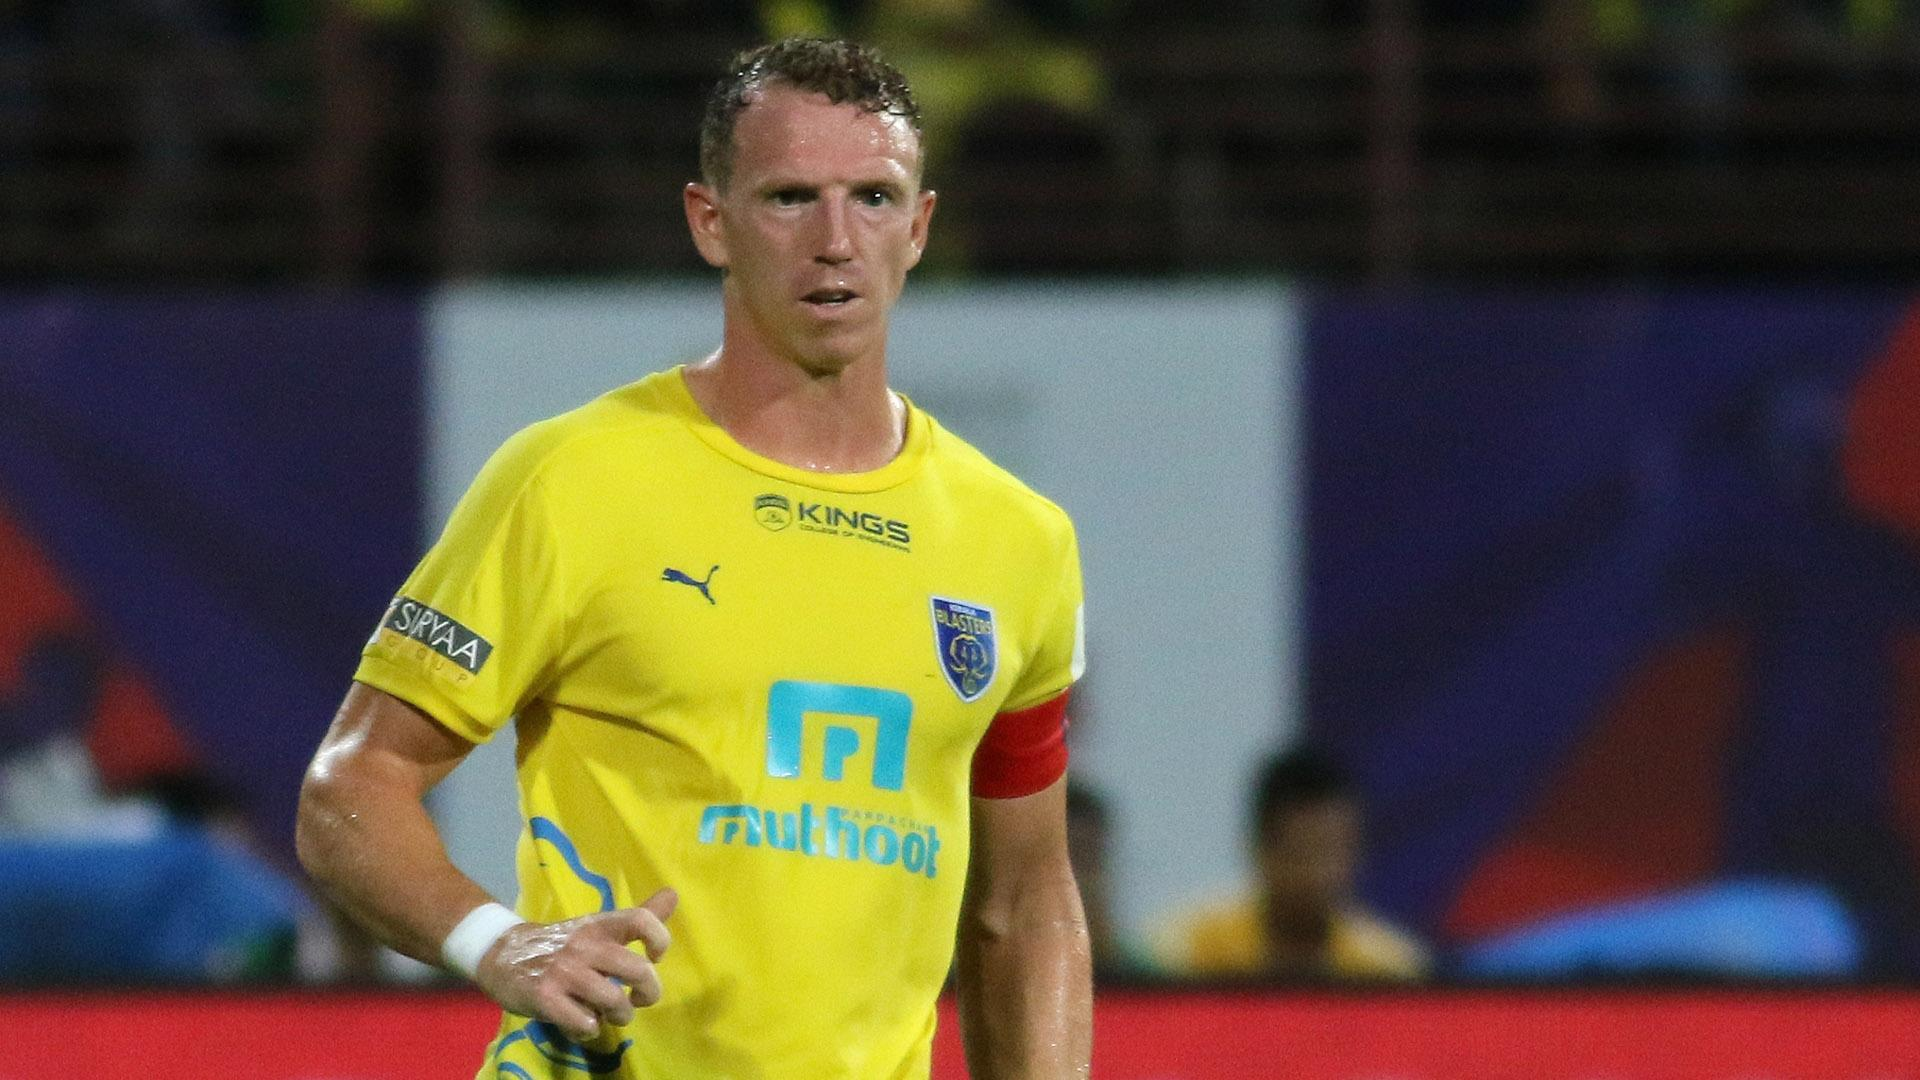 Indian Super League: Peter Ramage - Jhingan can play at the highest level